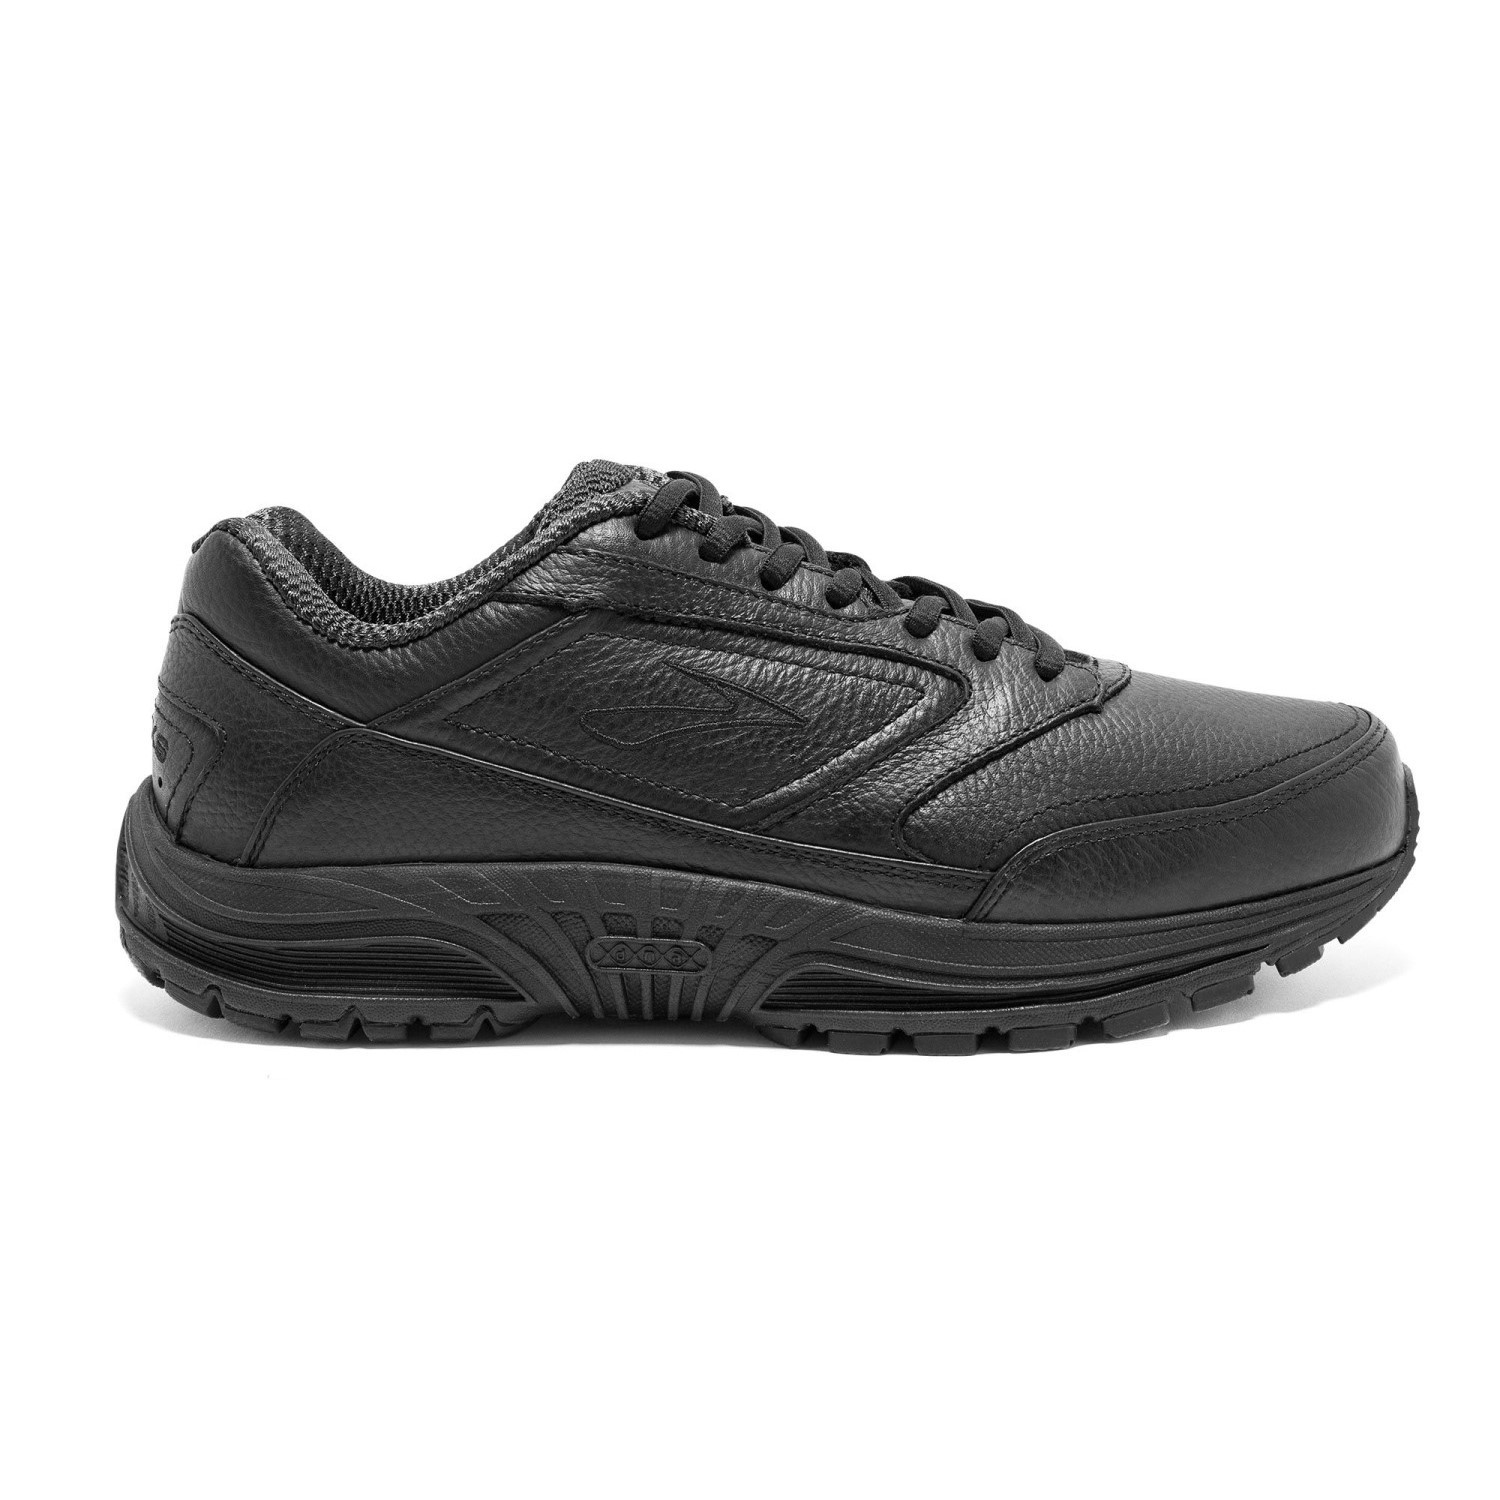 caa099c2499 Brooks Dyad Walker - Womens Walking Shoes - Black